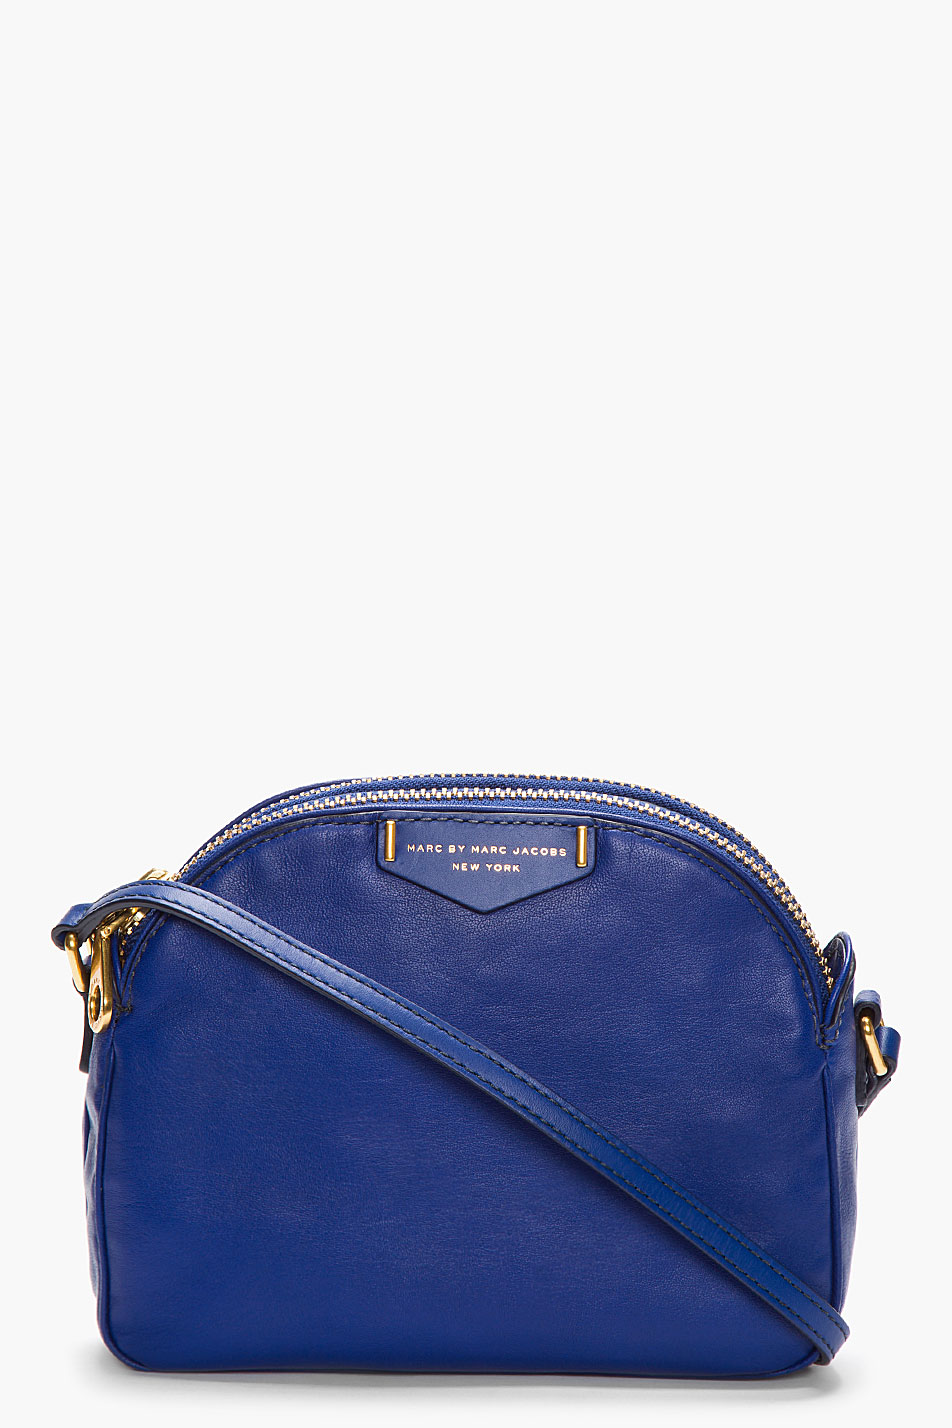 ... By Marc Jacobs Royal Blue Leather Downtown Lola Cross Body Bag in Blue